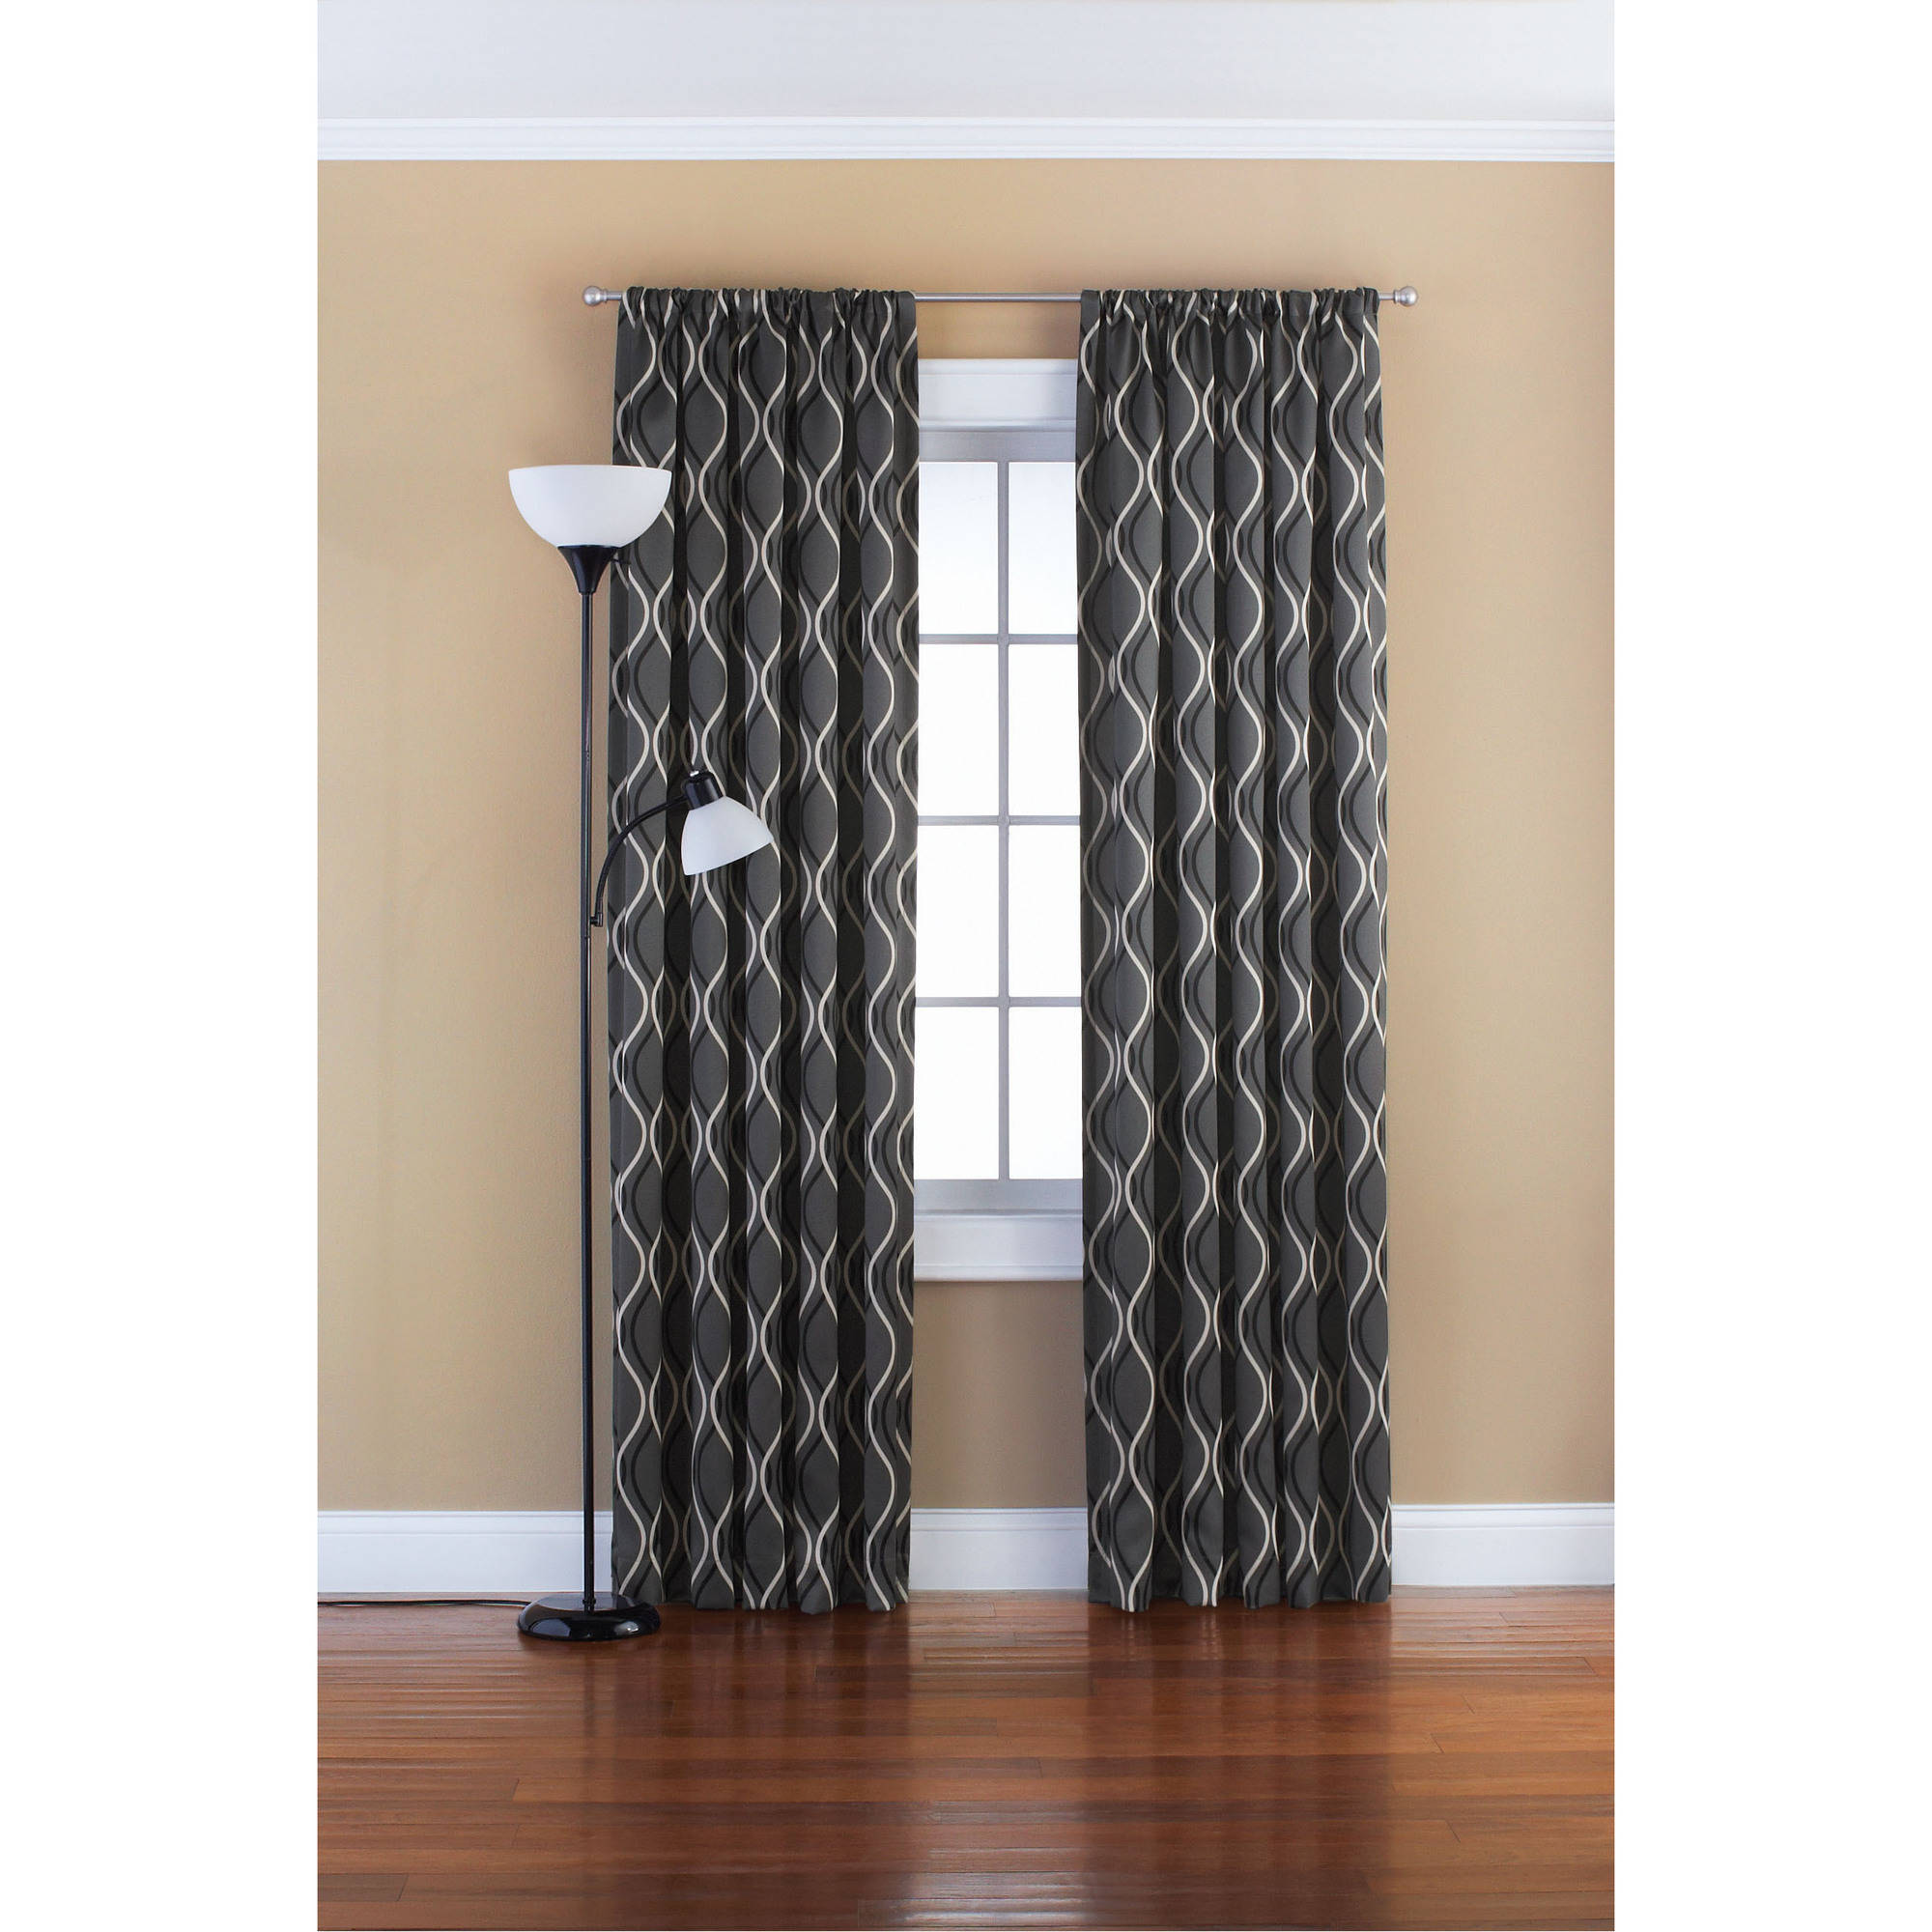 Curtains For Sale At Walmart Eclipse Samara Room Darkening Energy Efficient Thermal Curtain Panel